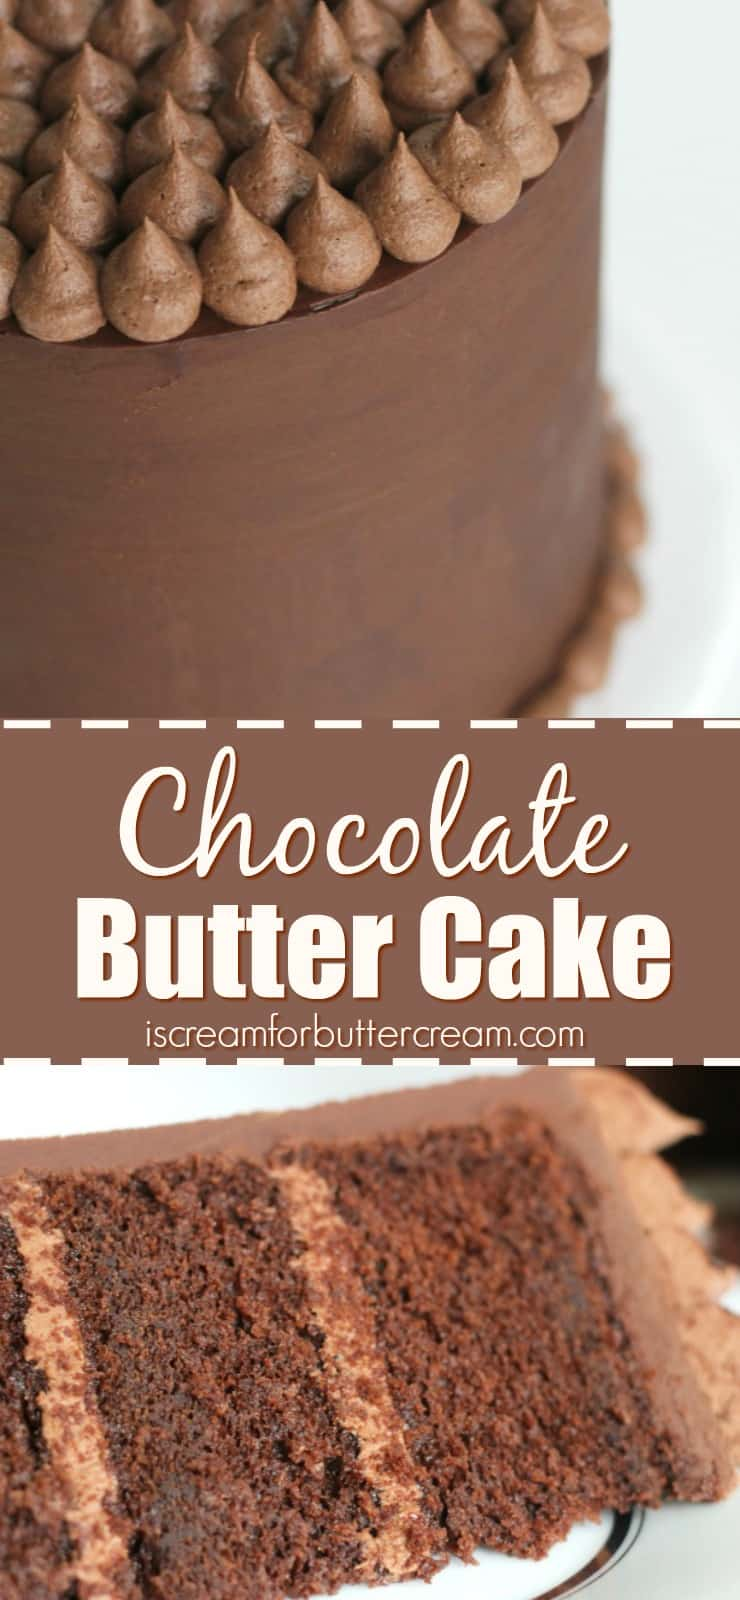 Chocolate Butter Cake Pinterest Graphic